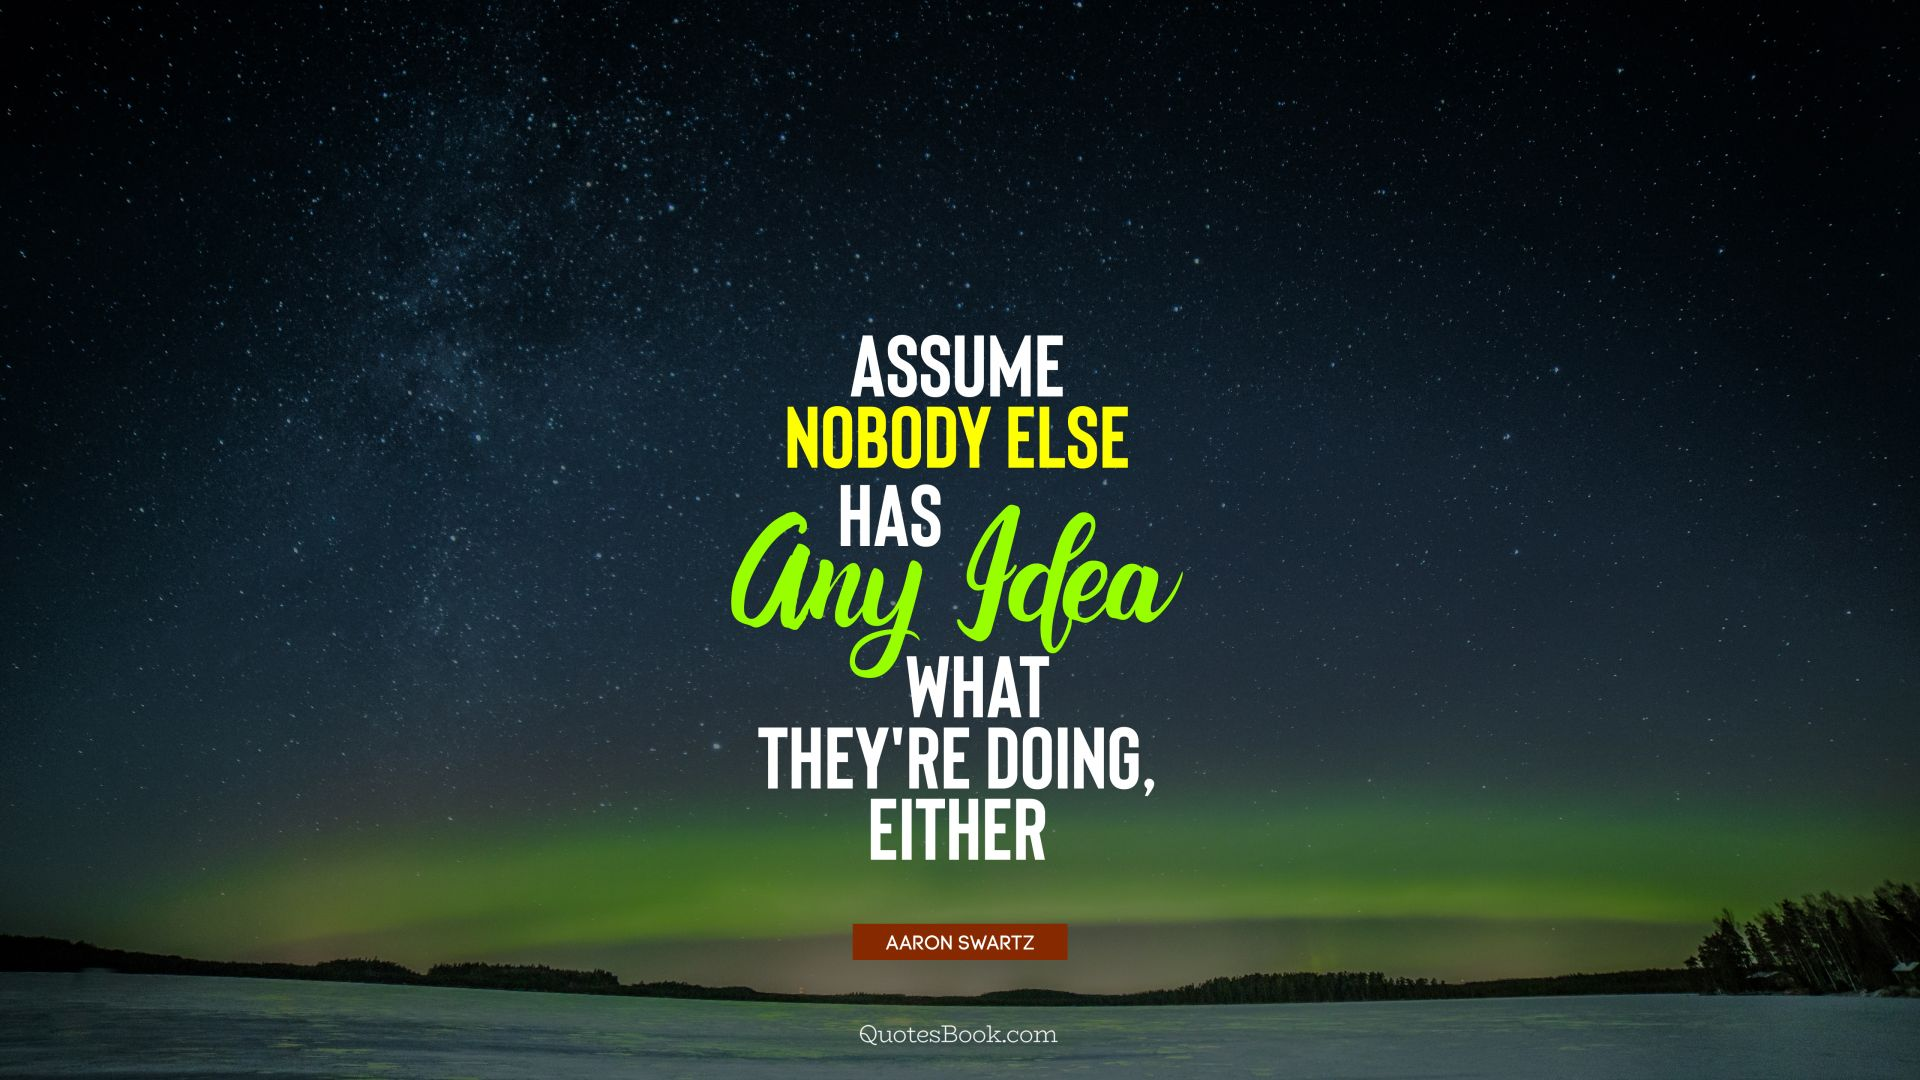 Assume nobody else has any idea what they're doing, either. - Quote by Aaron Swartz